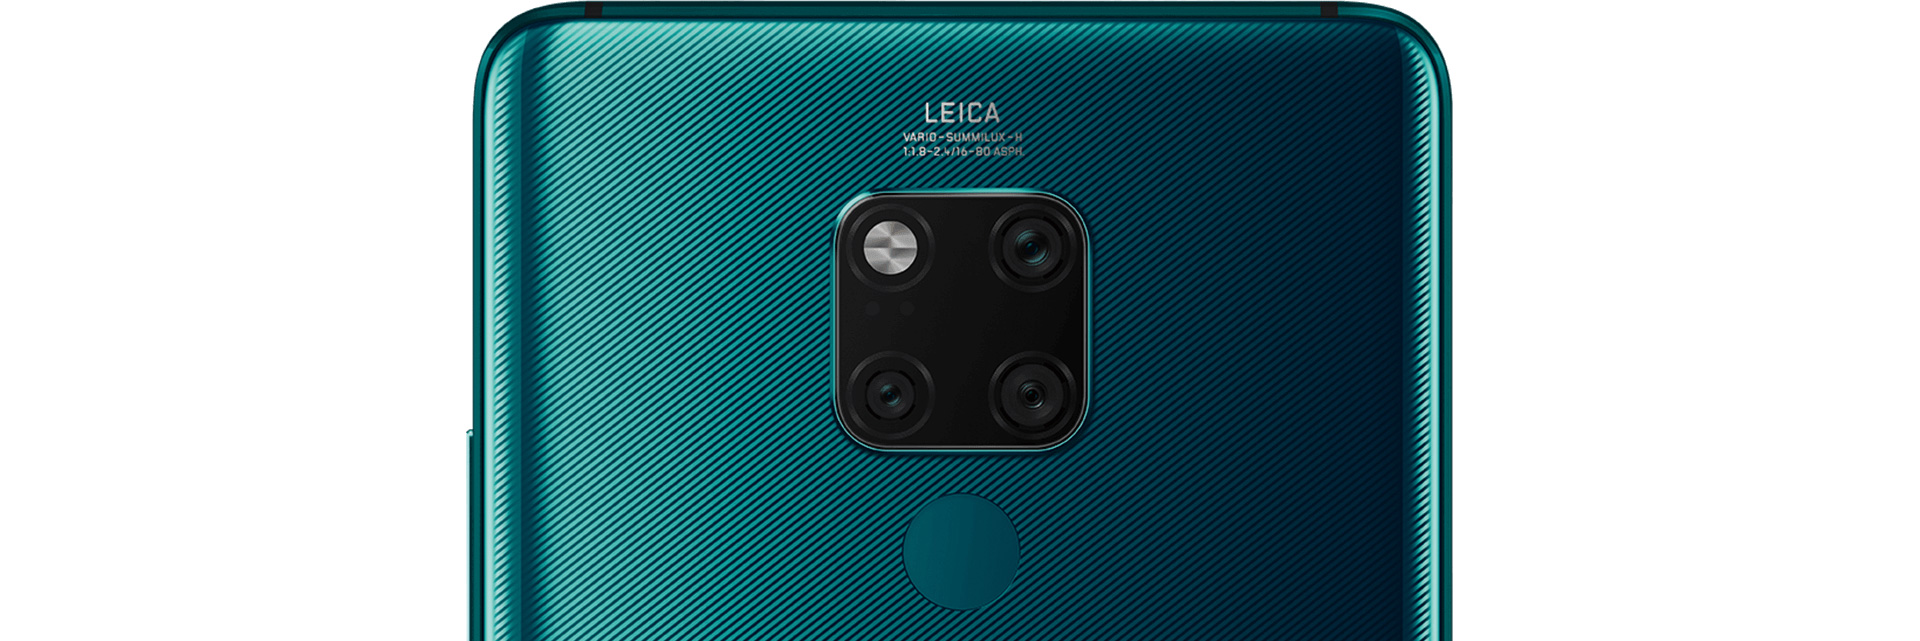 HUAWEI Mate20 X 5G leica triple camera